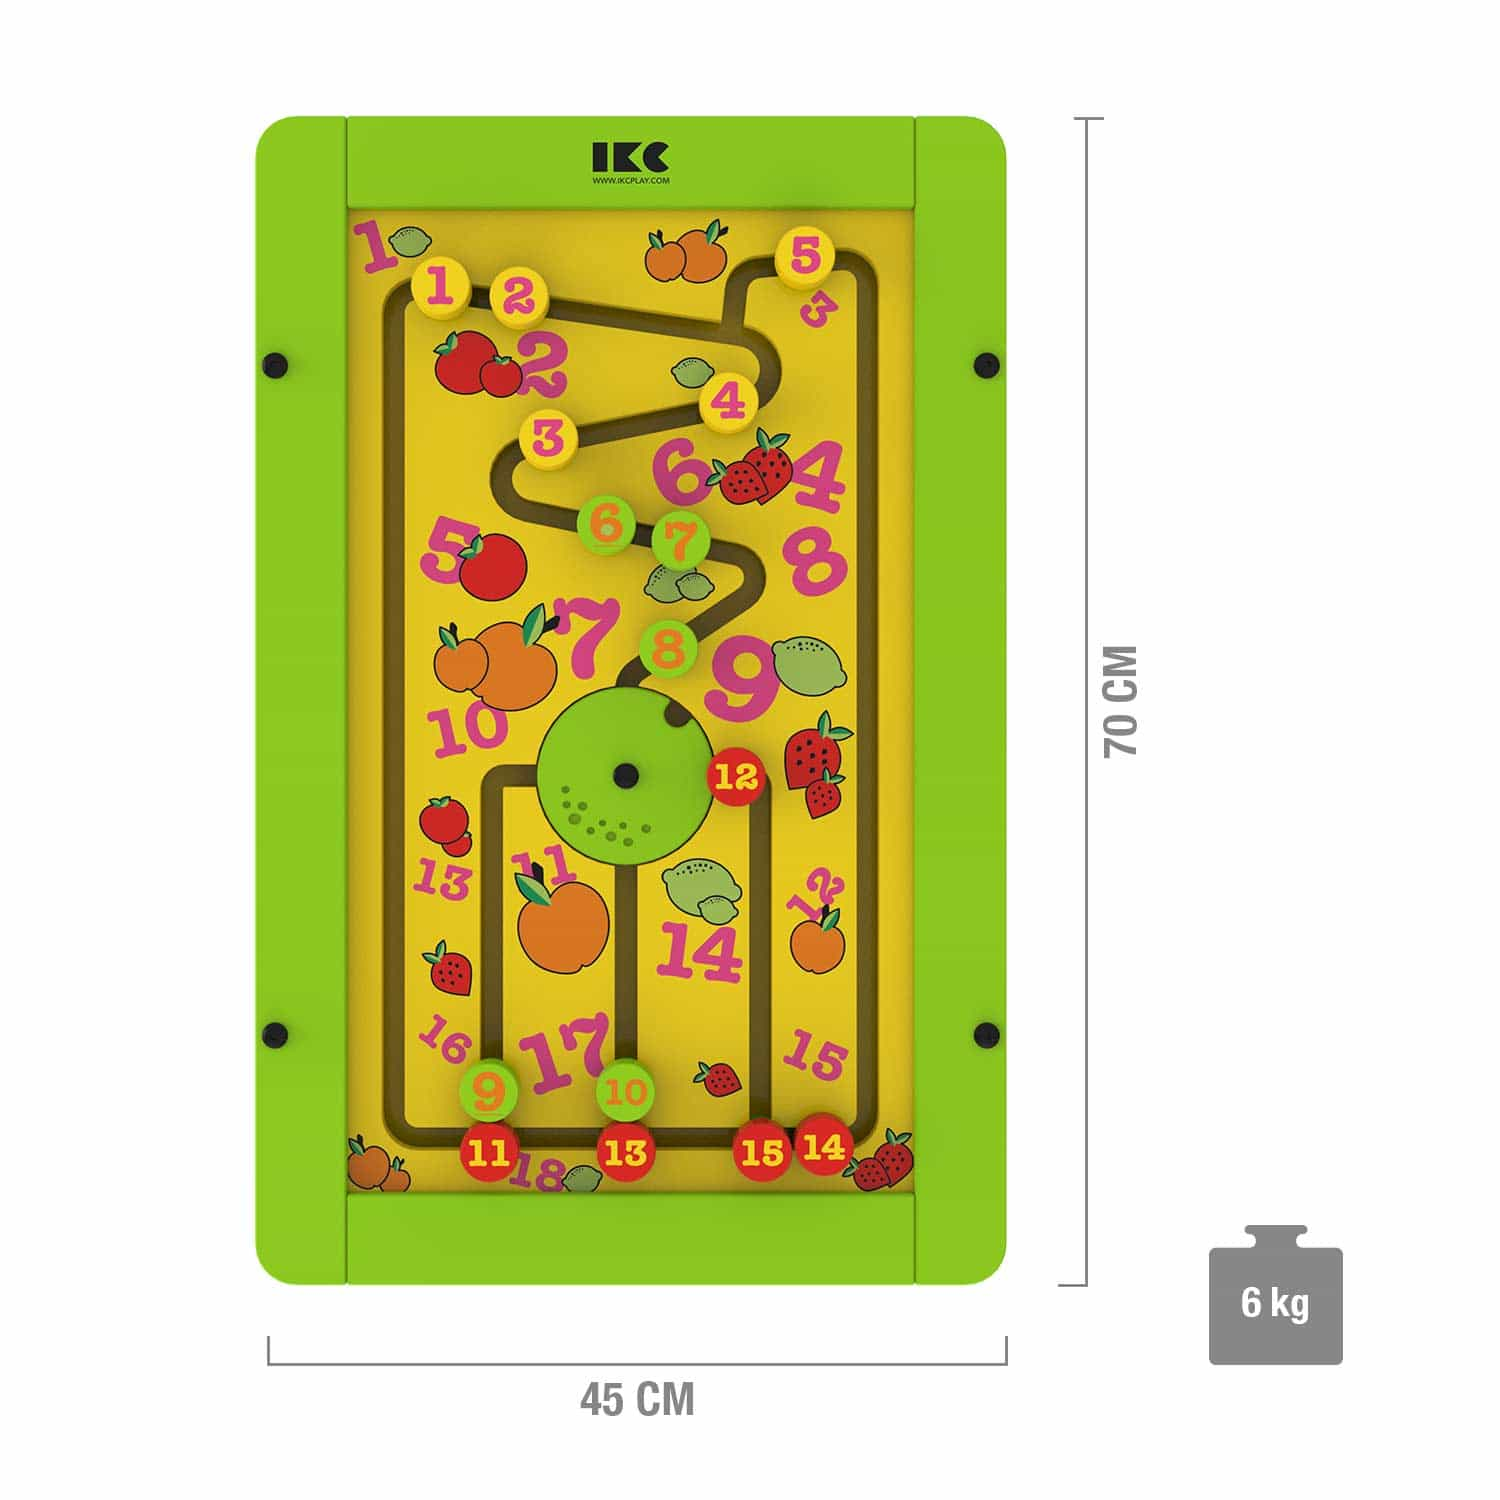 https://static.praxisdienst.com/out/pictures/generated/product/1/1500_1500_100/138221_internationalkidsconcepts_spielmodul_abacus_rad_groesse_gruen.jpg